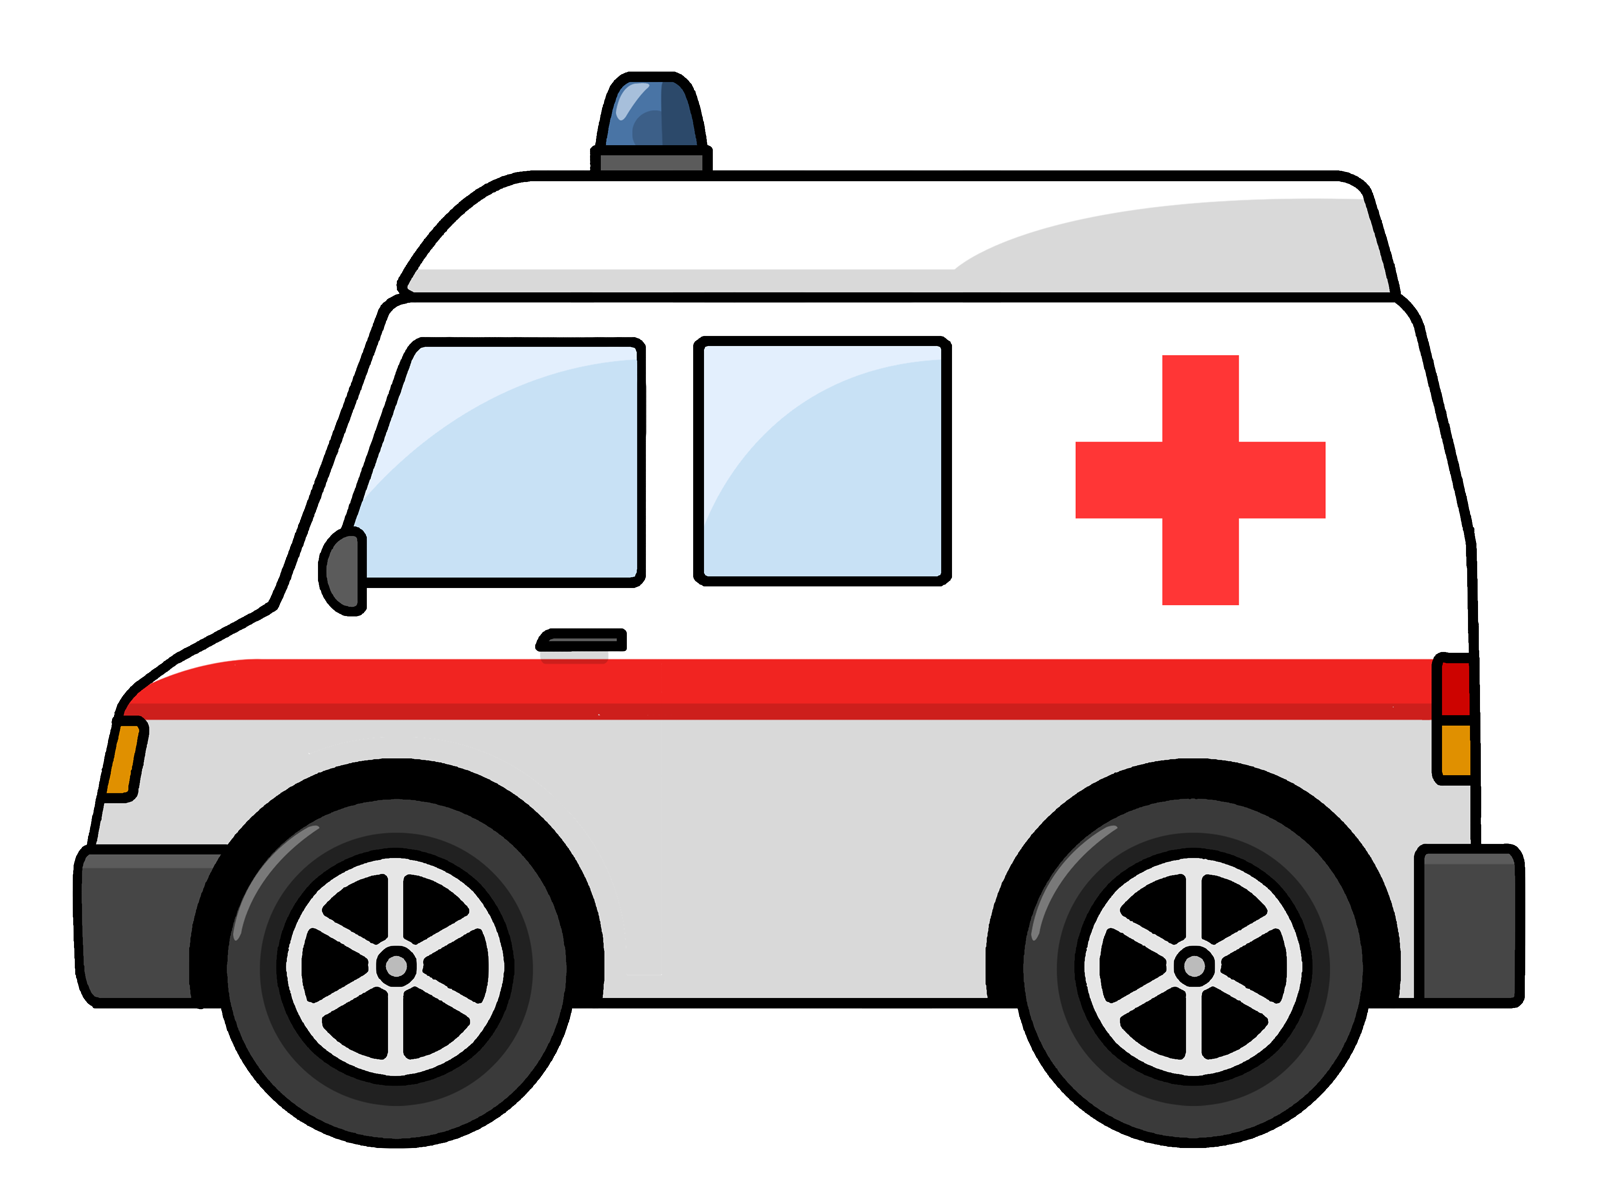 Clipart hospital drawing. Desun hours ambulance assistance